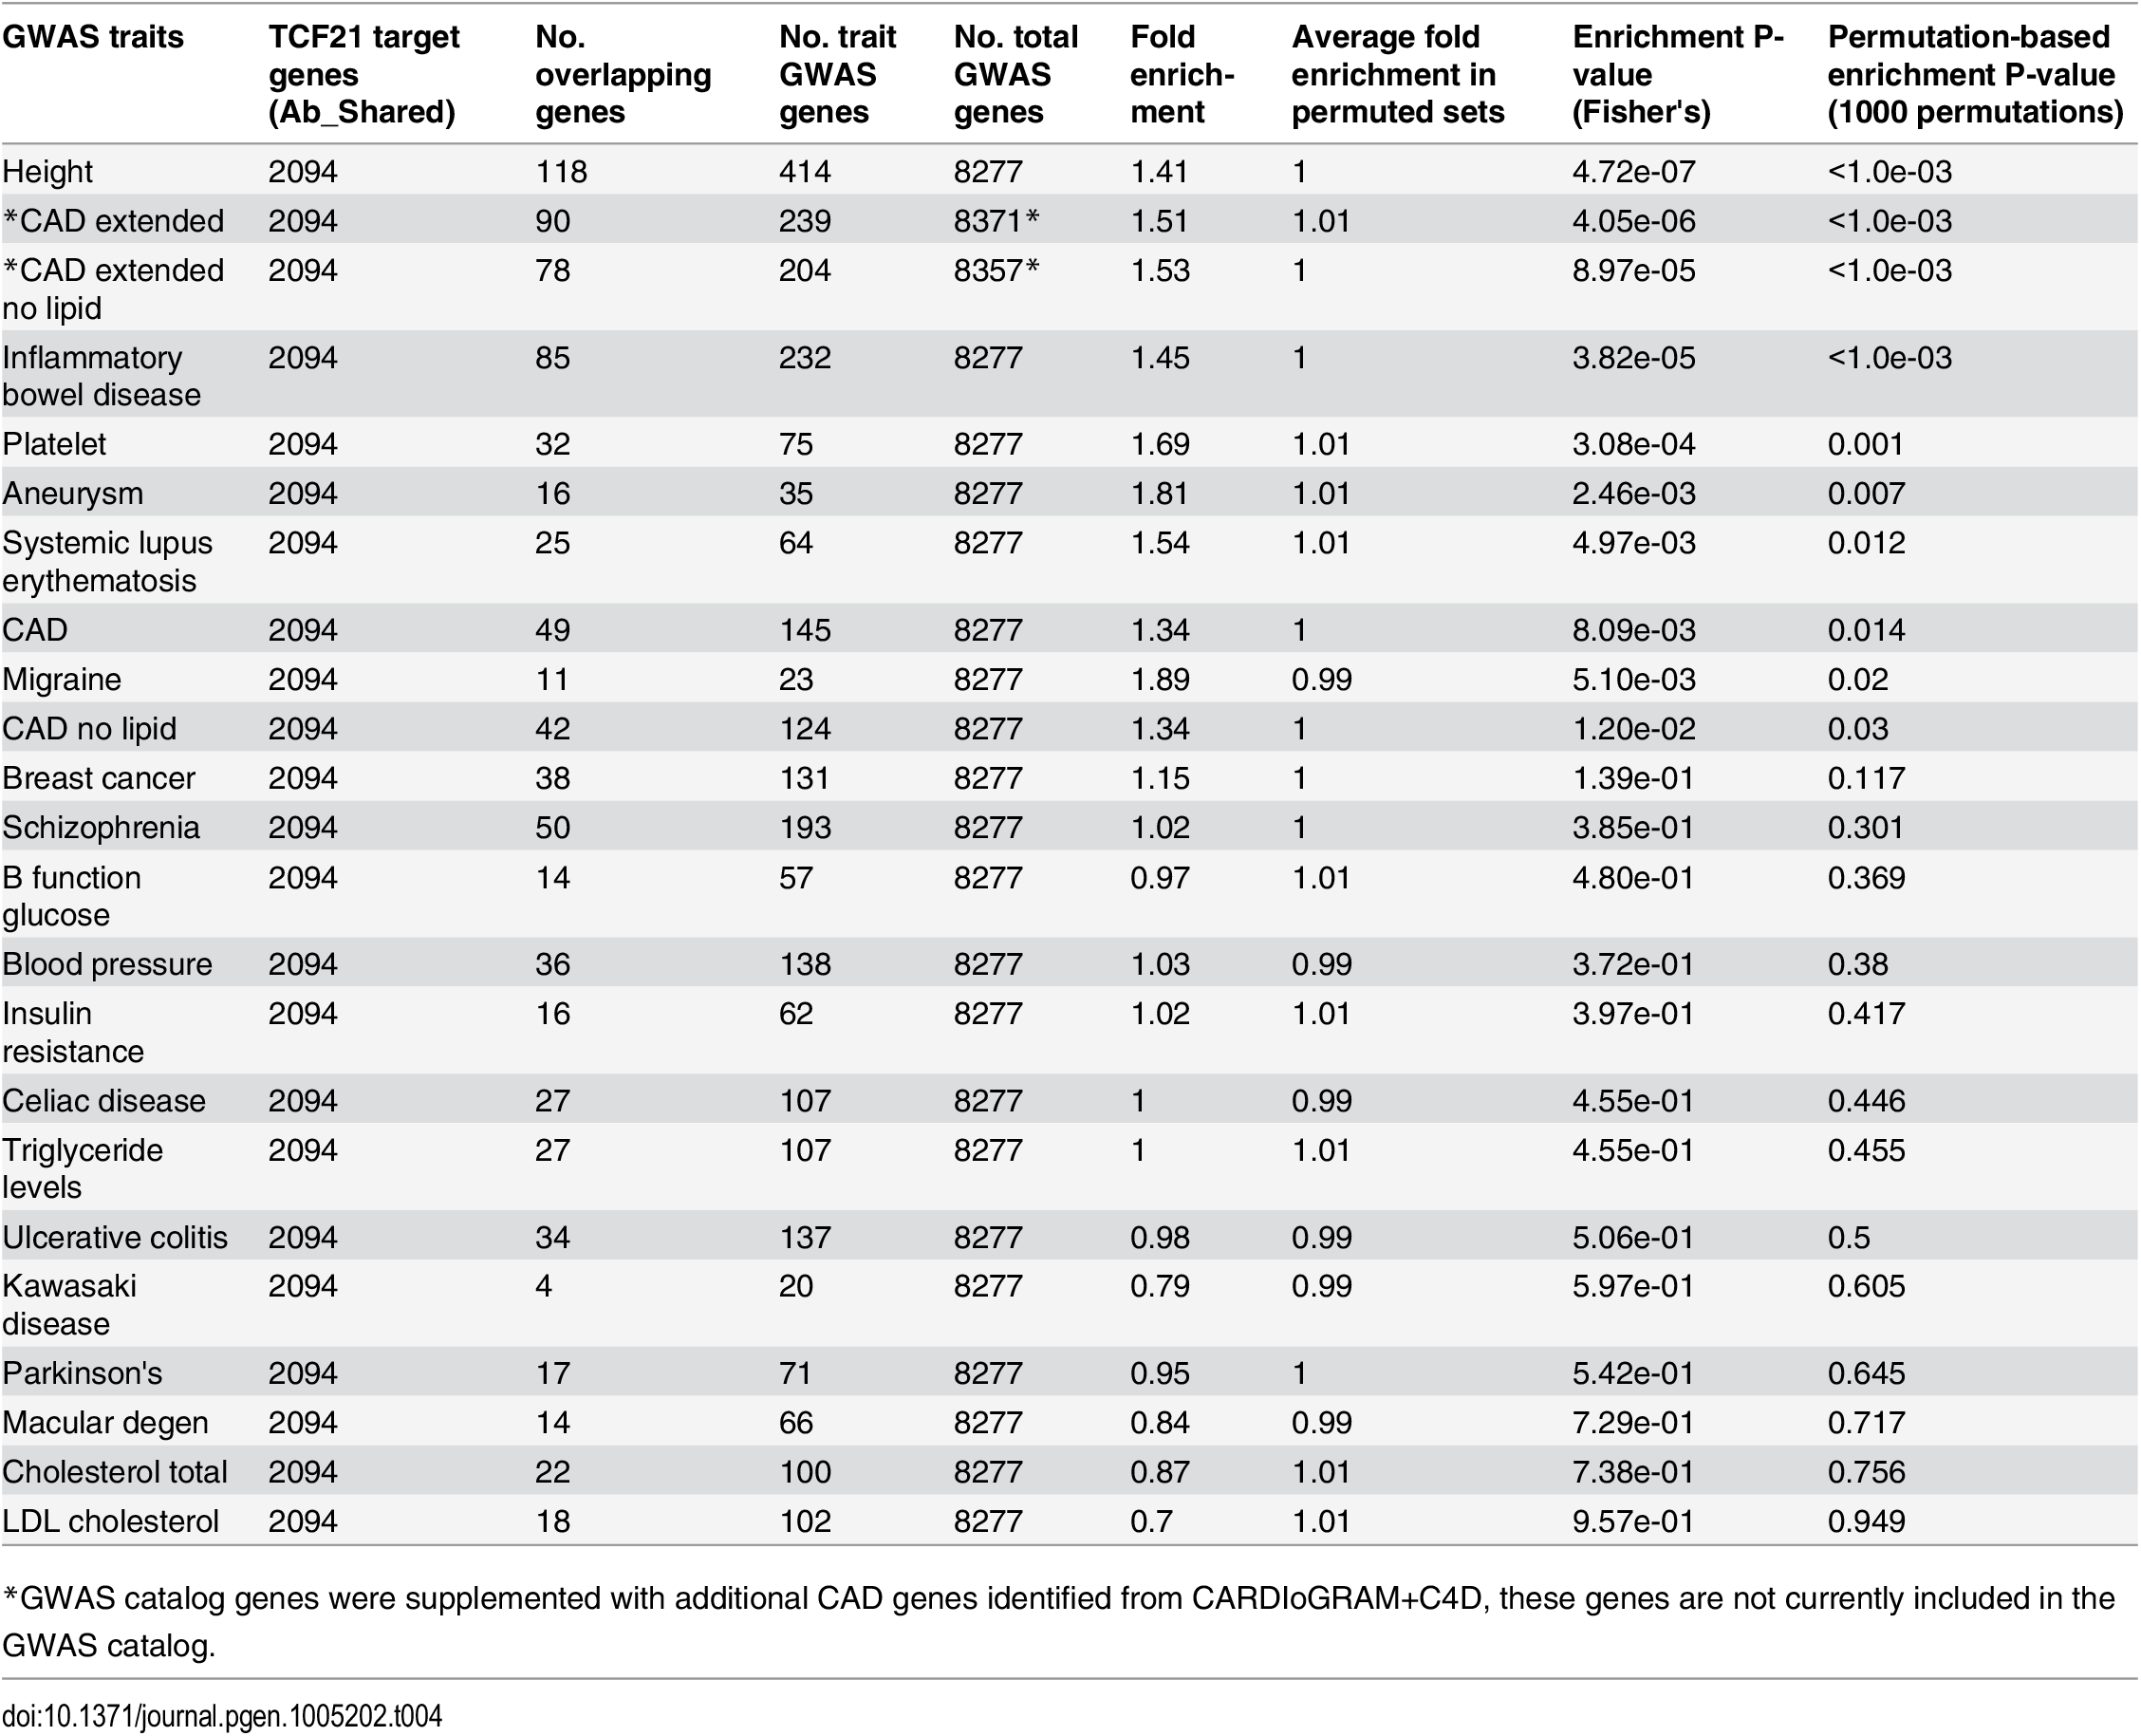 Enrichment of TCF21 target genes from Ab_Shared among GWAS candidate trait genes using all GWAS genes as background and a permutation strategy to correct for the differences in the numbers of GWAS genes between traits.